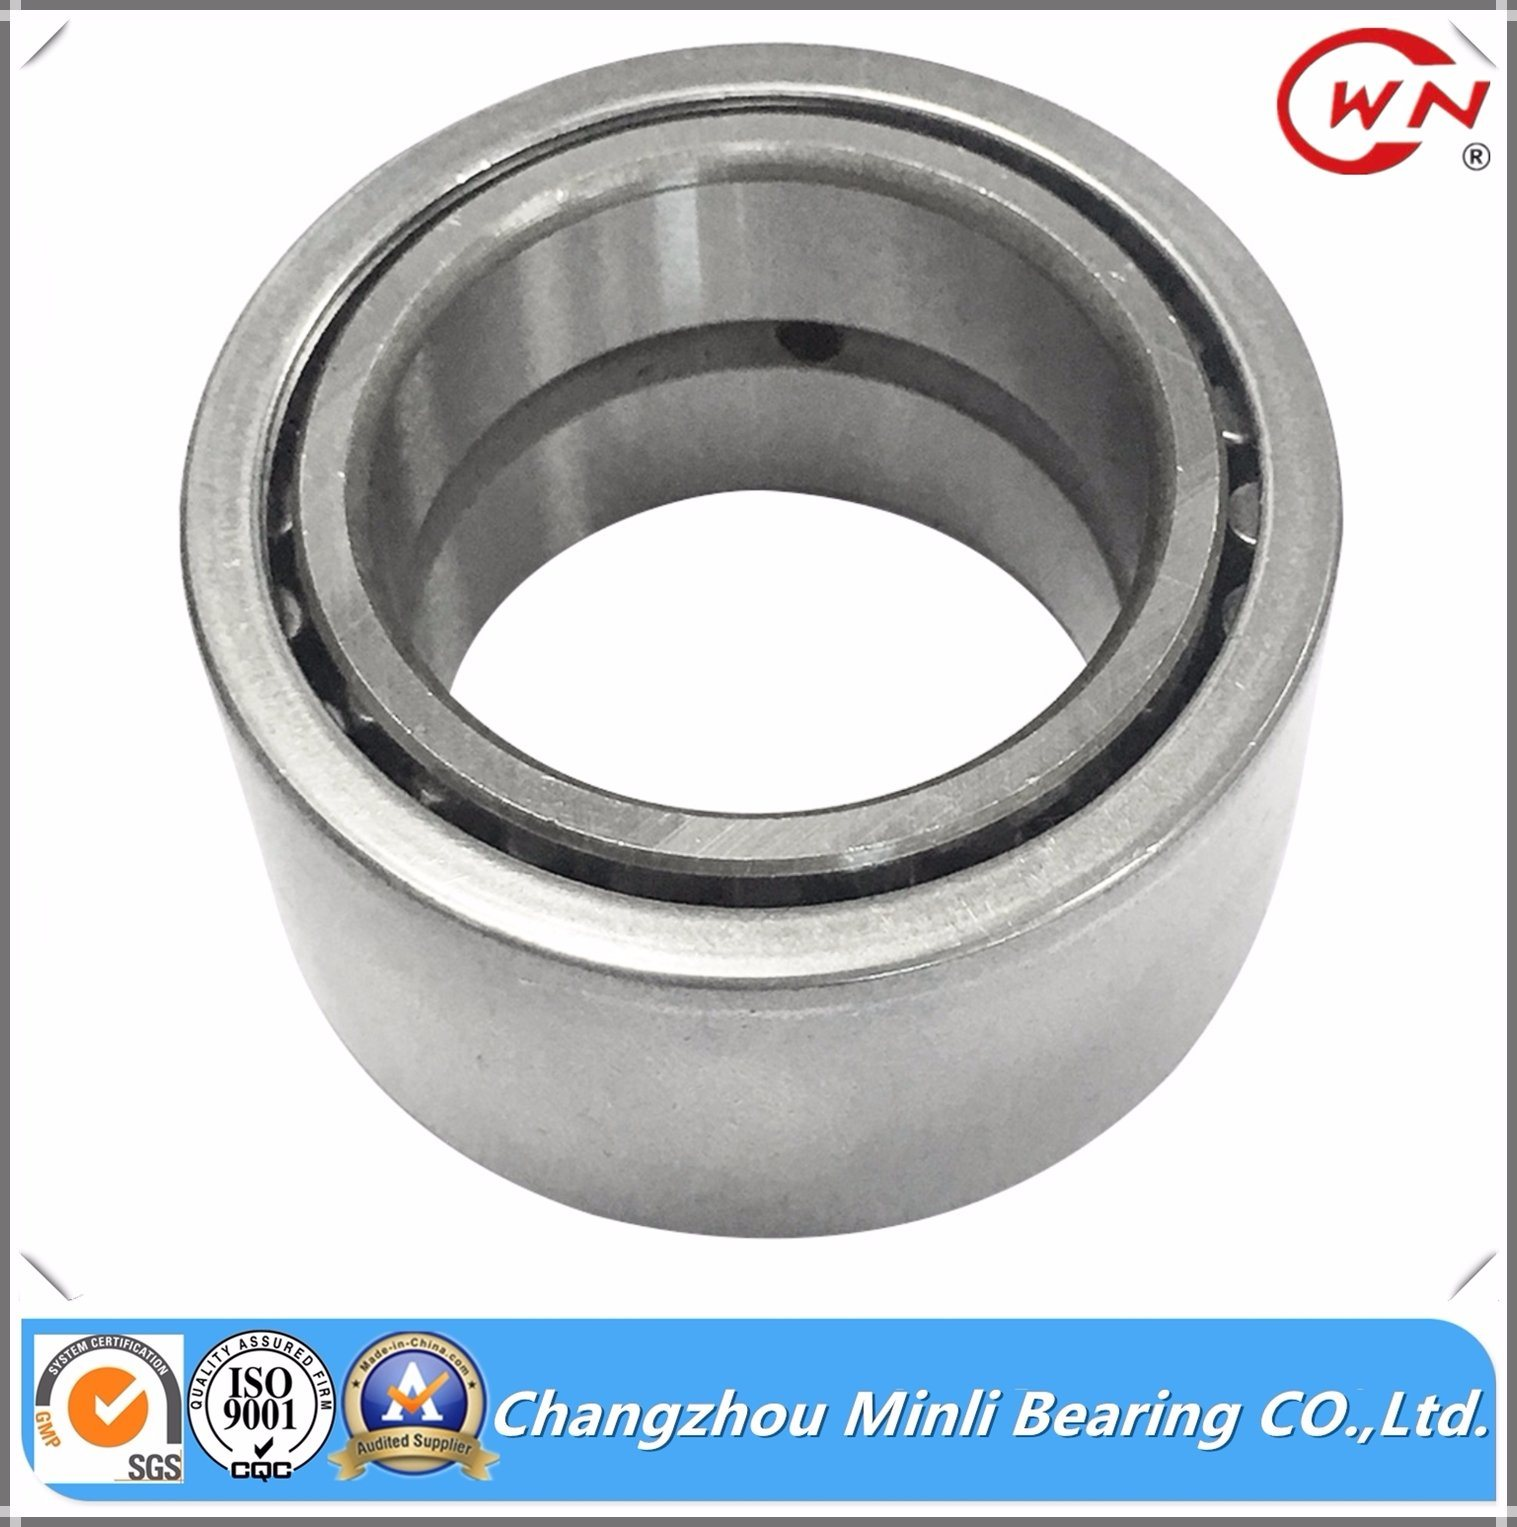 Inch Series Open-End Drawn Cup Needle Roller Bearing with Retainer